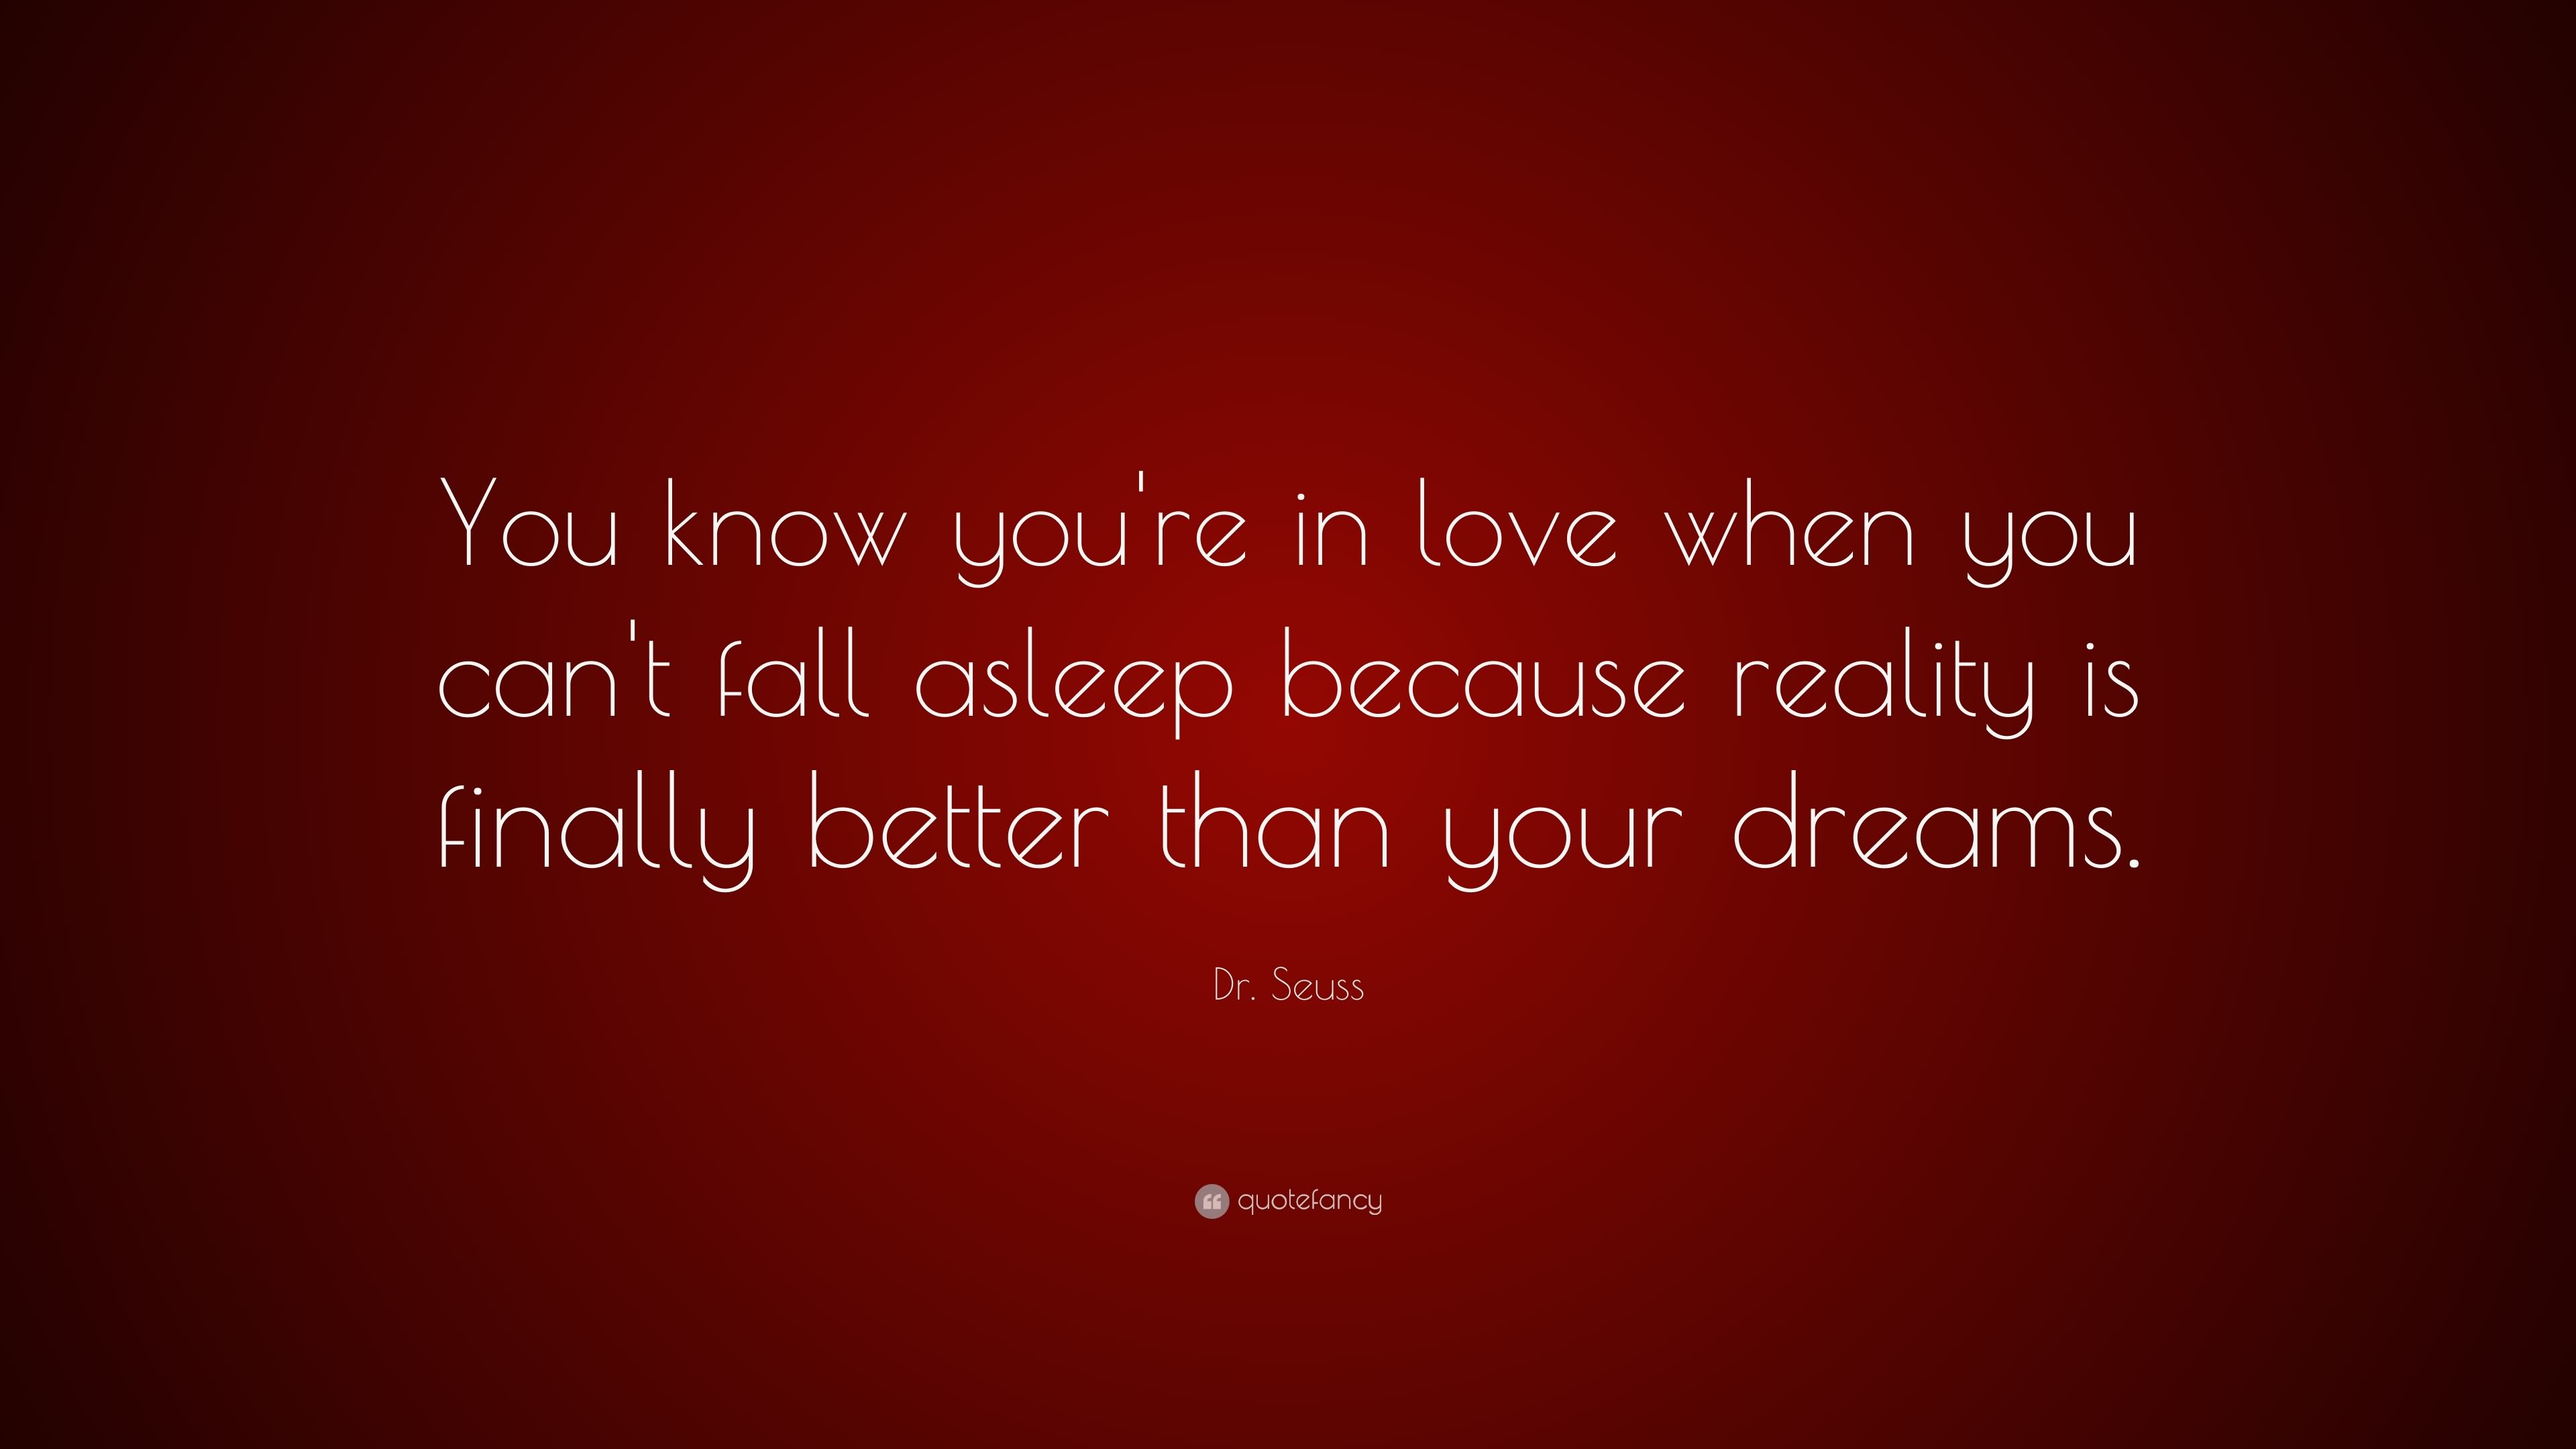 You Know You're In Love When You Can't Fall Asleep Because Reality